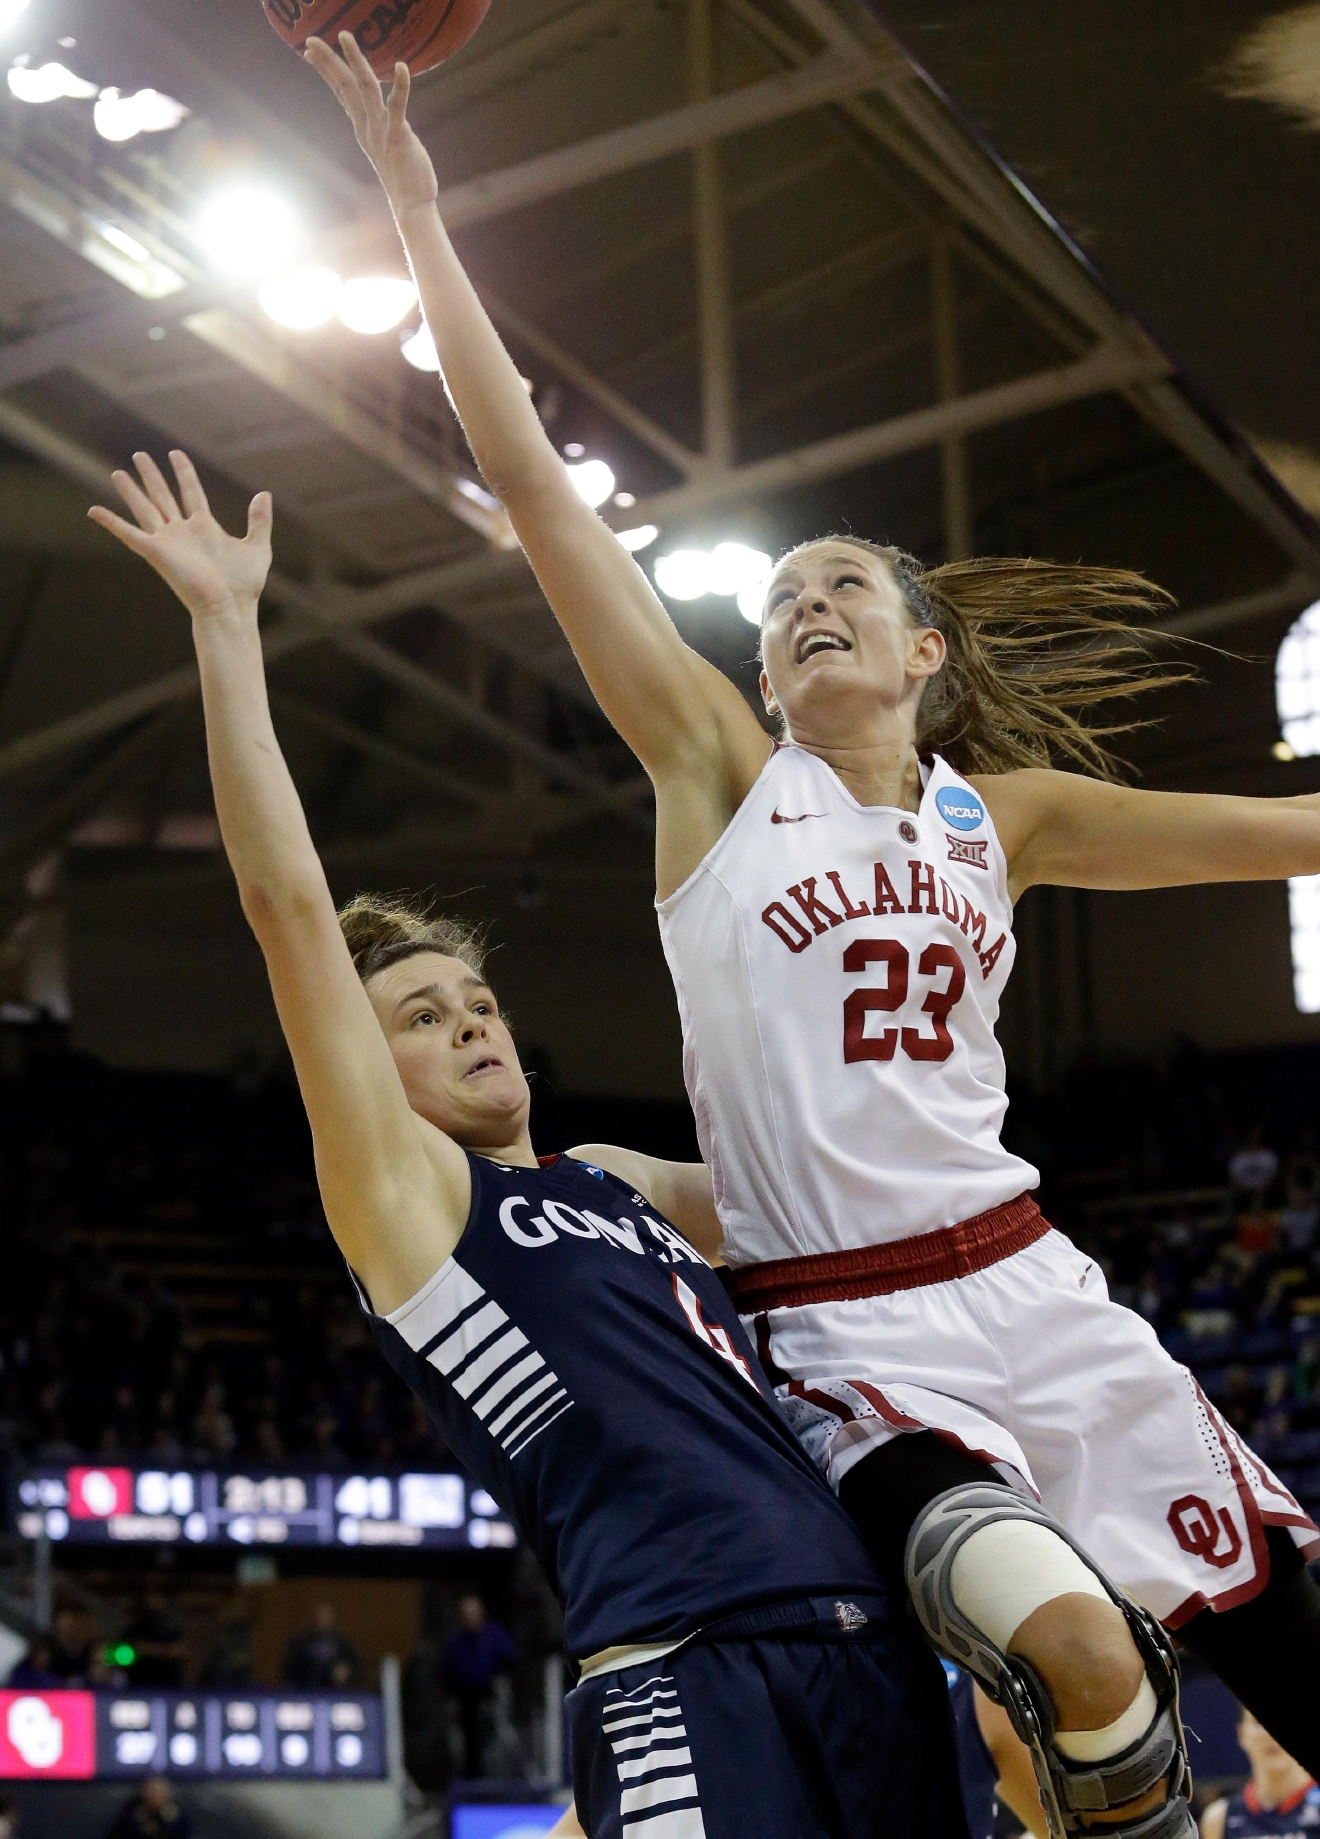 Oklahoma's Maddie Manning (23) collides with Gonzaga's Makenlee Williams during the second half of a first-round game in the NCAA women's college basketball tournament Saturday, March 18, 2017, in Seattle. (AP Photo/Elaine Thompson)